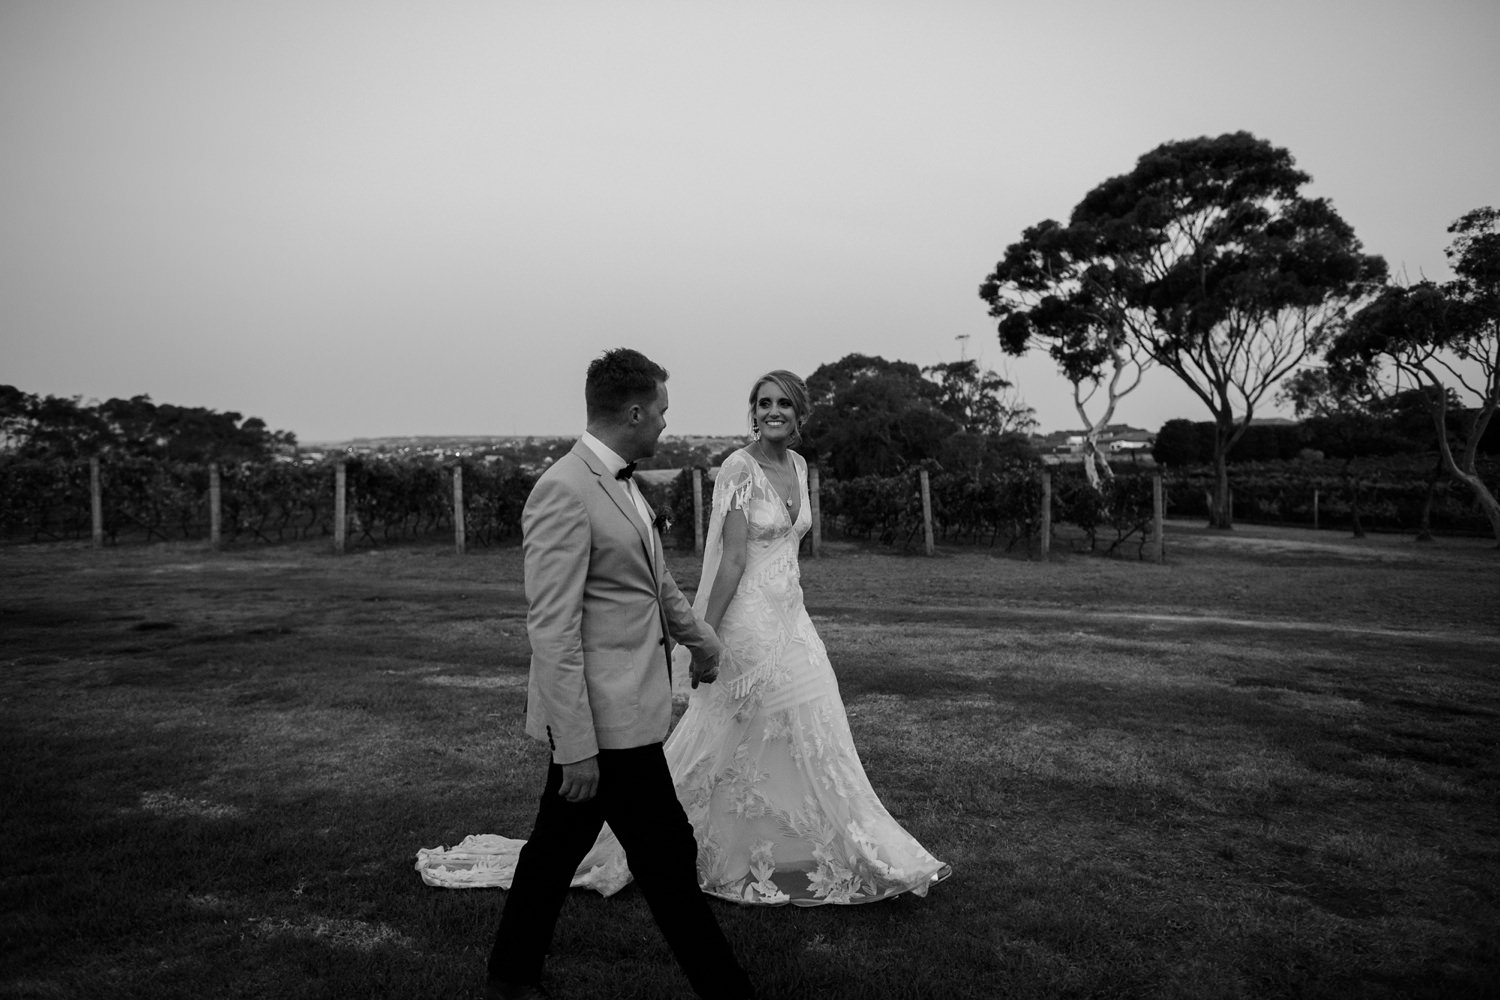 relaxed-wedding-photographer-melbourne-bellarine-peninsula-baie-winery_0120.jpg